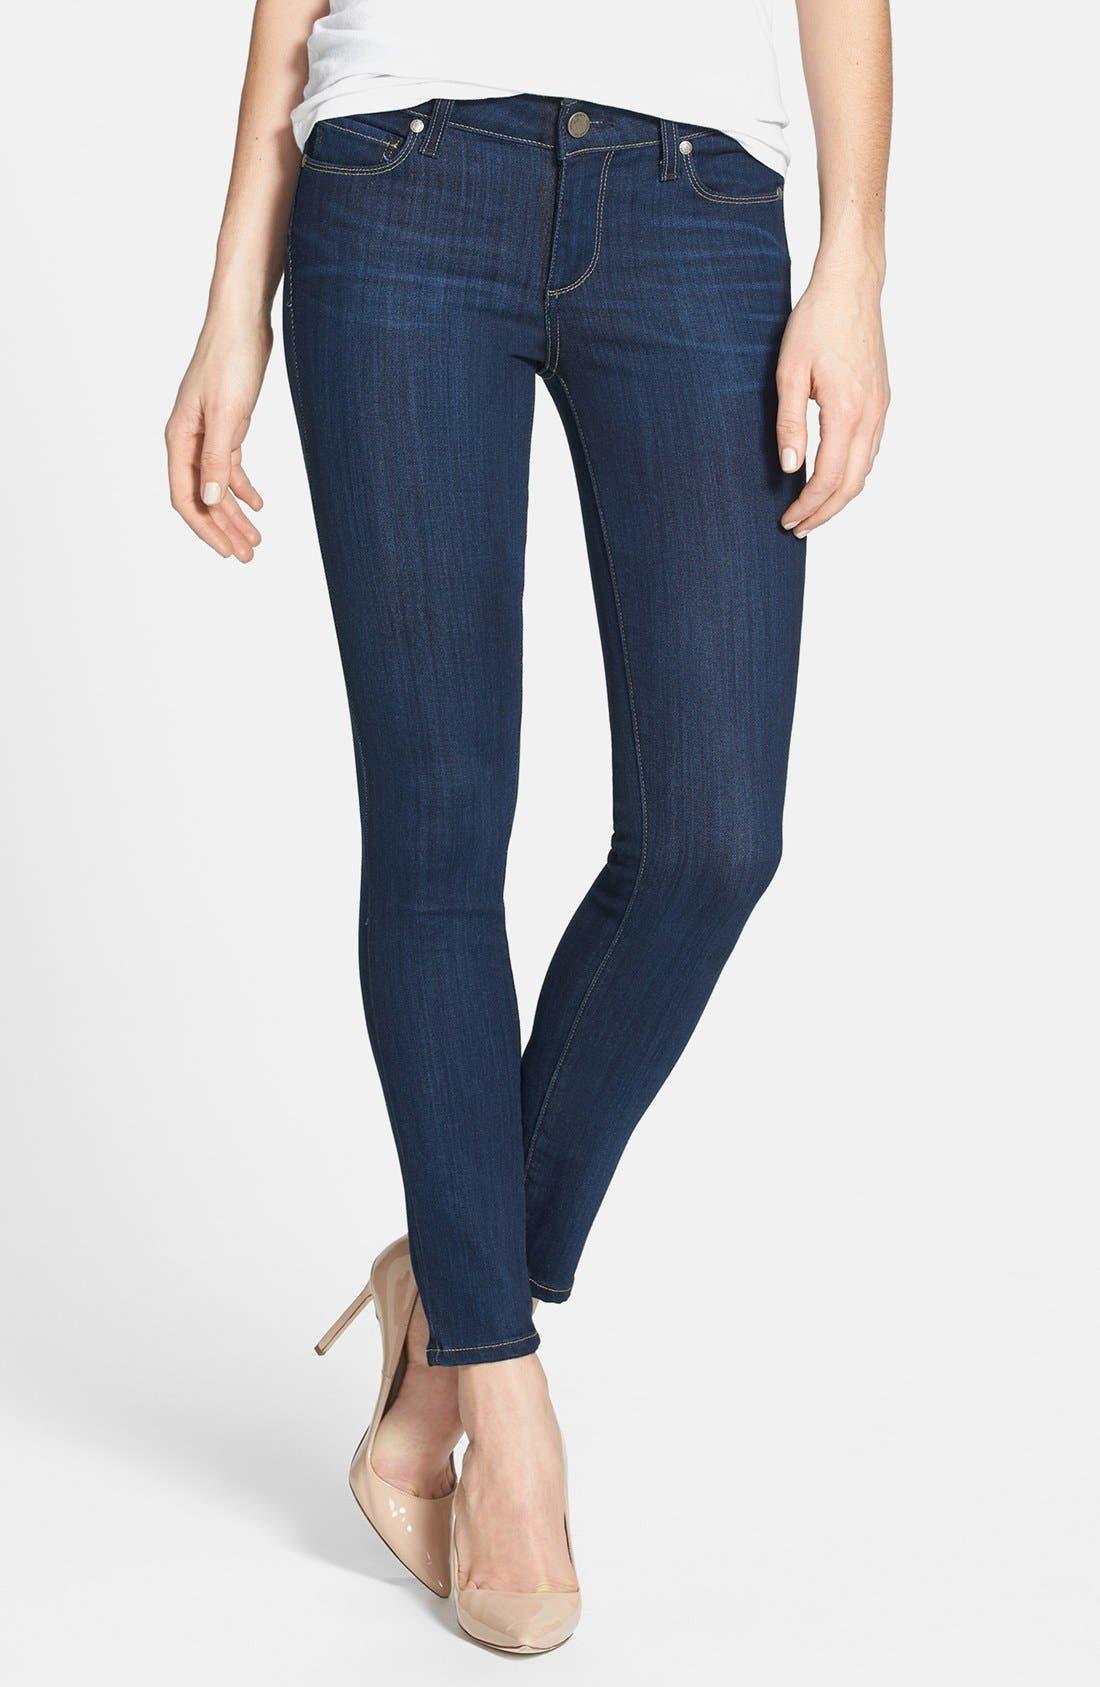 Alternate Image 1 Selected - Paige Denim 'Verdugo' Skinny Ankle Jeans (Ashbury)